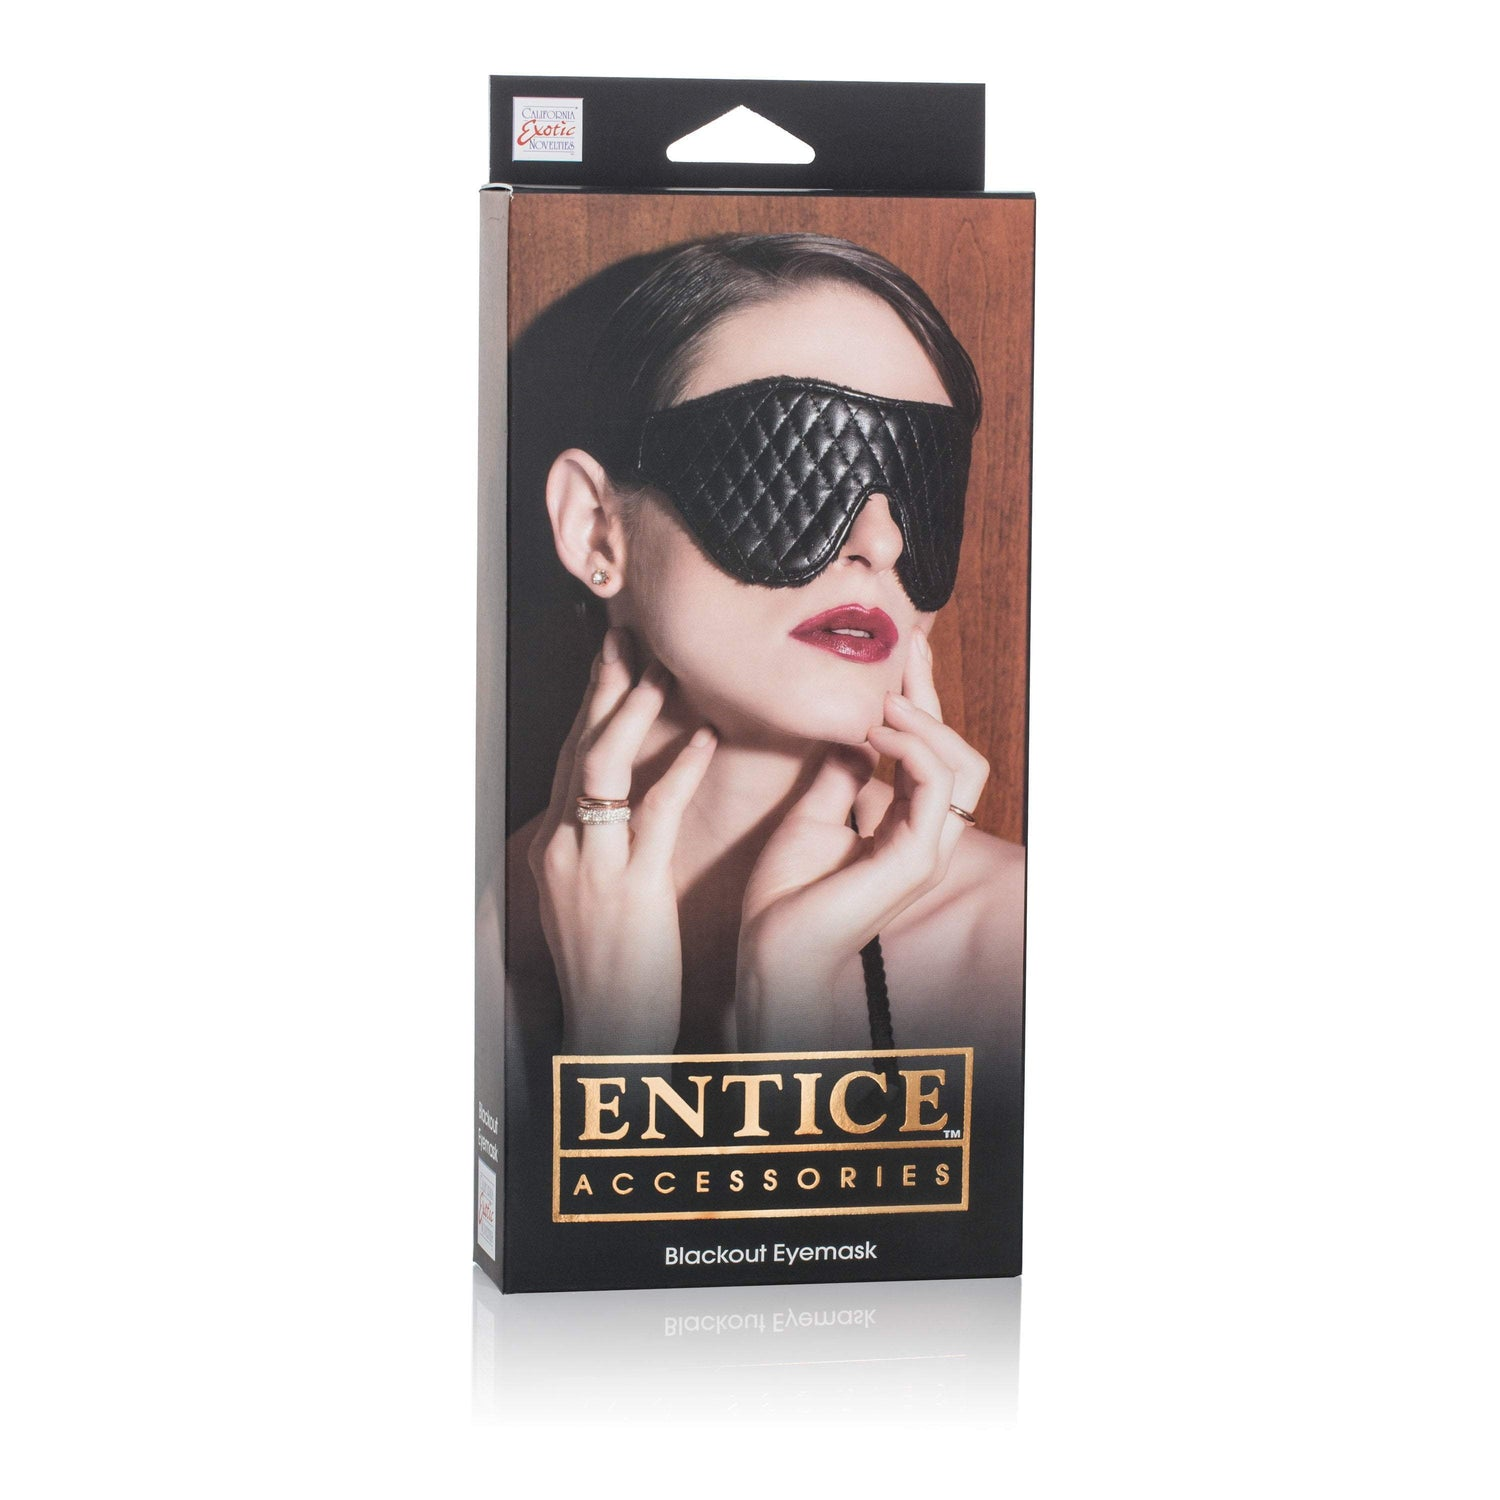 California Exotics - Entice Blackout Eyemask (Black) | CherryAffairs Singapore